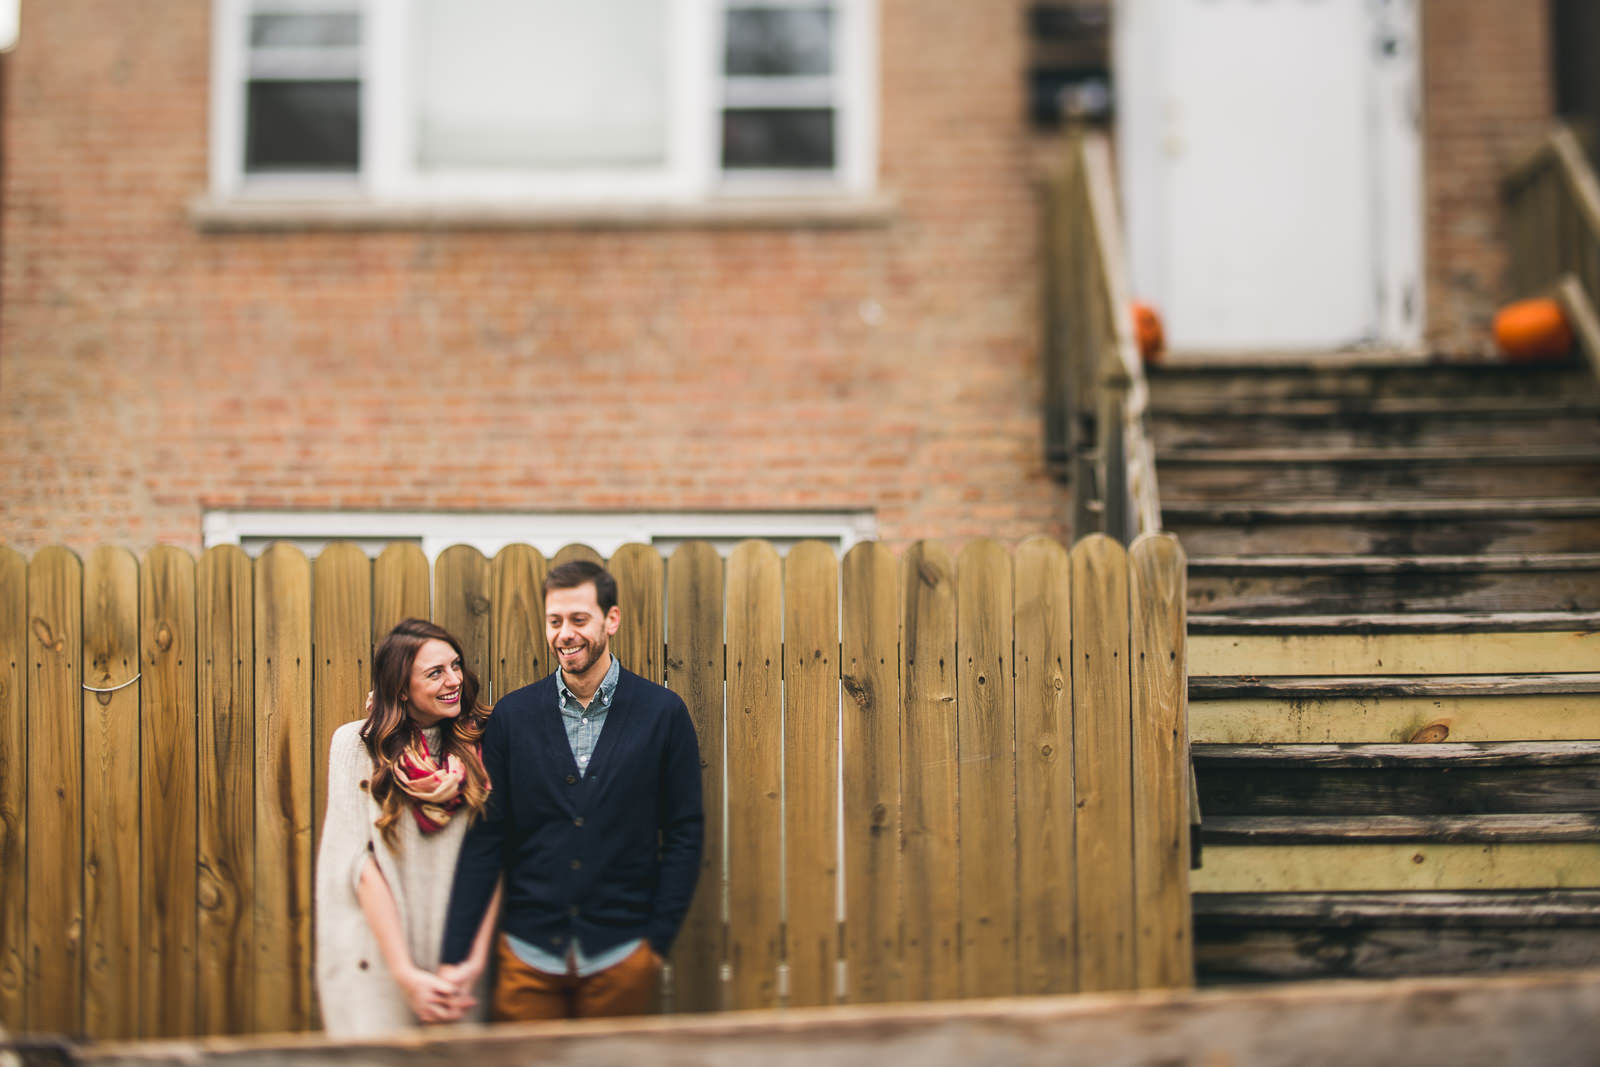 1 bucktown engagement photos - Bucktown Chicago Engagement Photos // Pearl + Ken